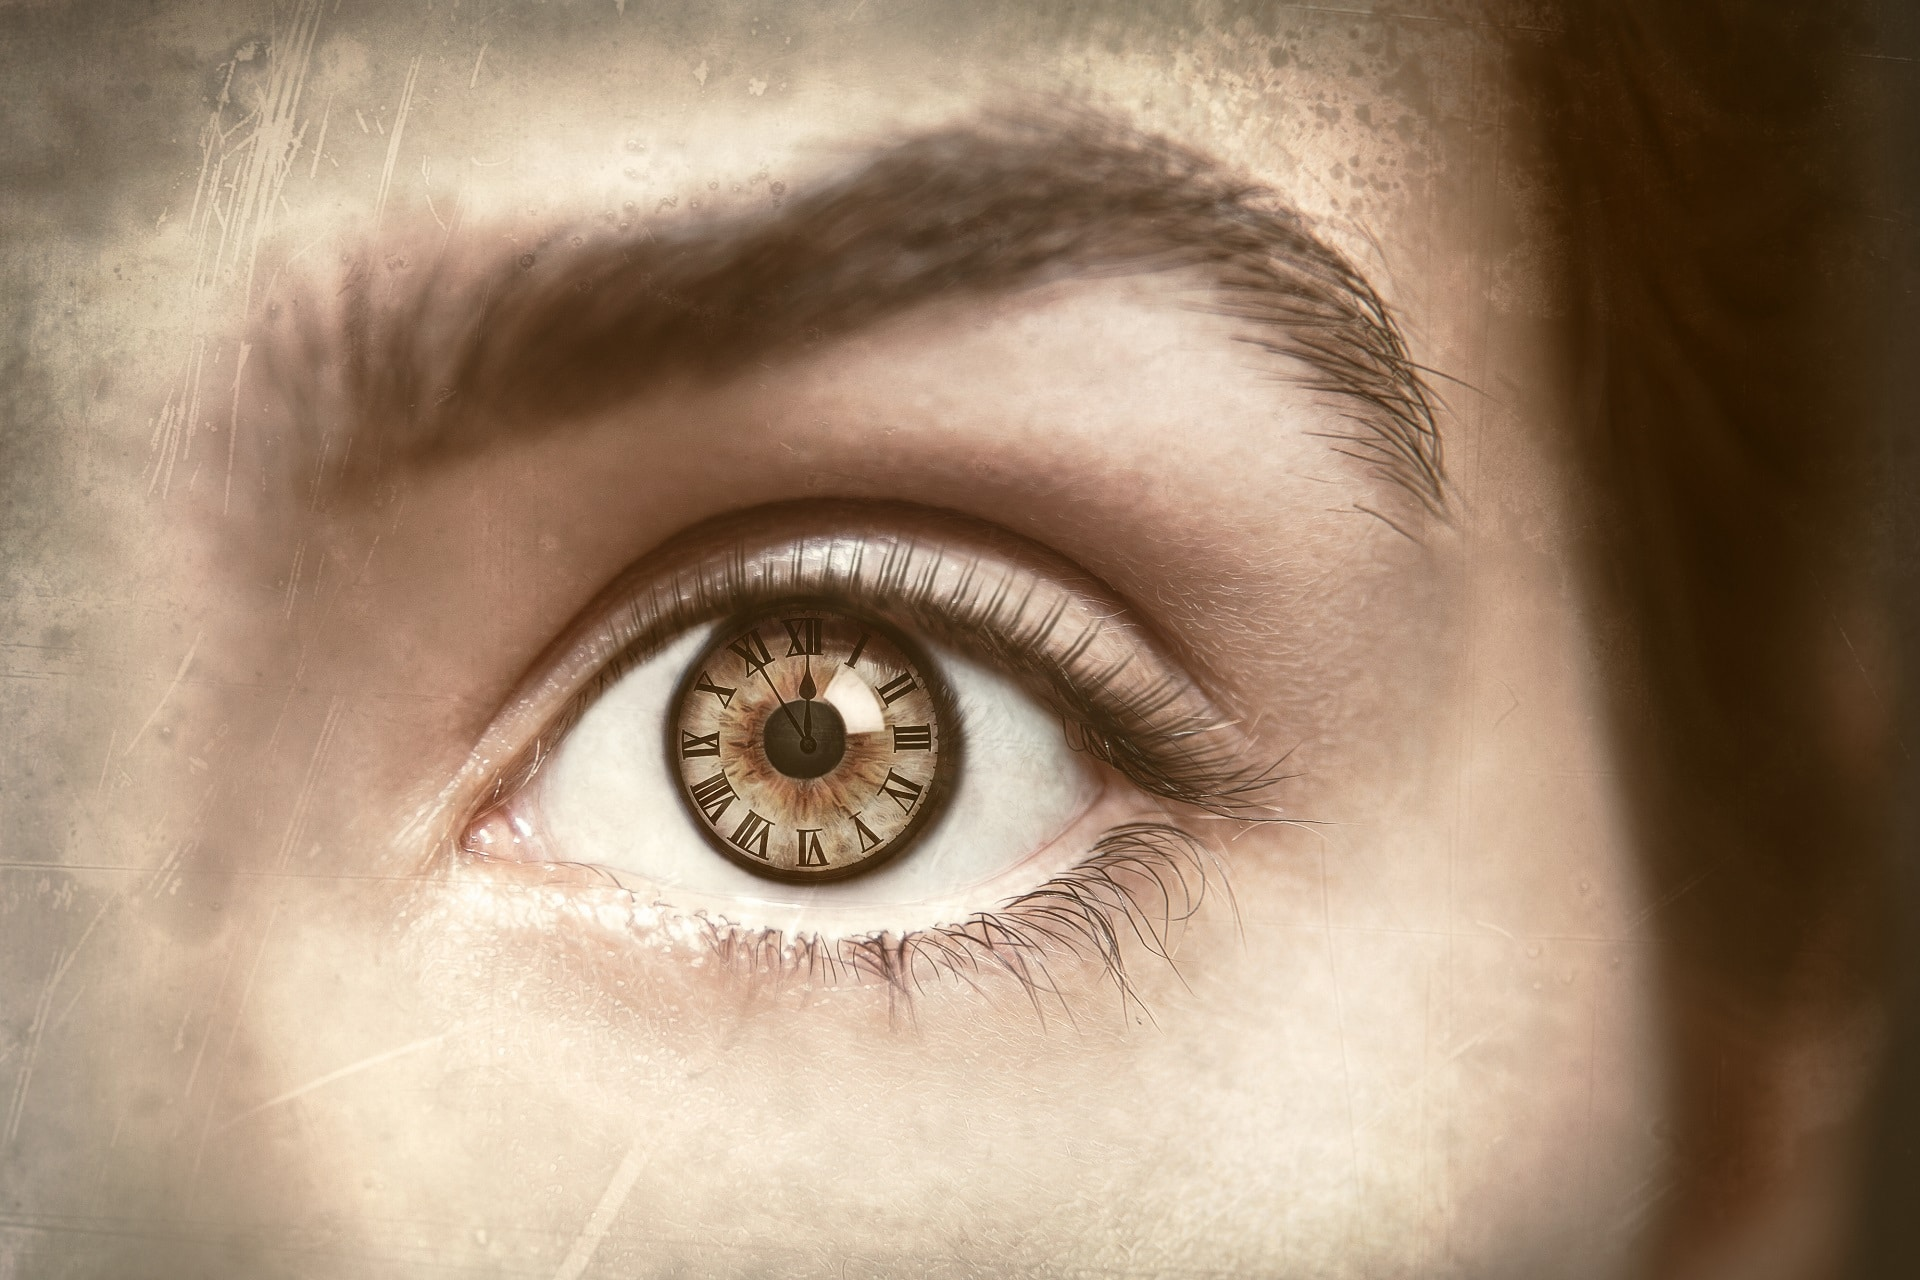 image of a clock in a woman's eye